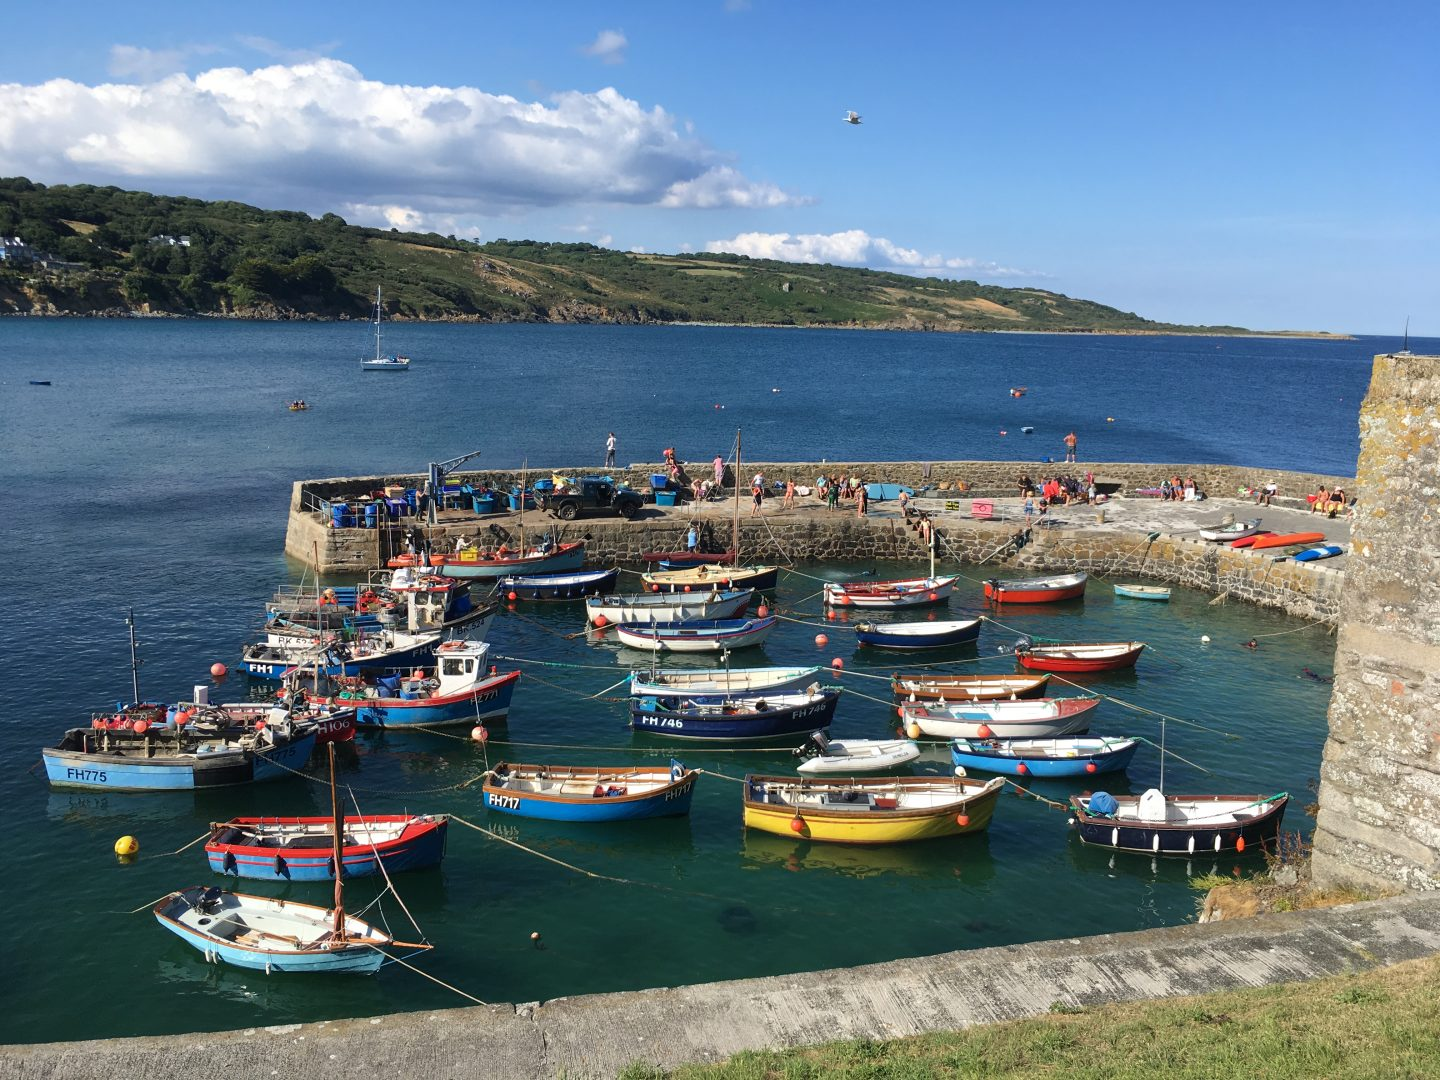 Fishing boats at Coverack Lizard Peninsula Cornwall